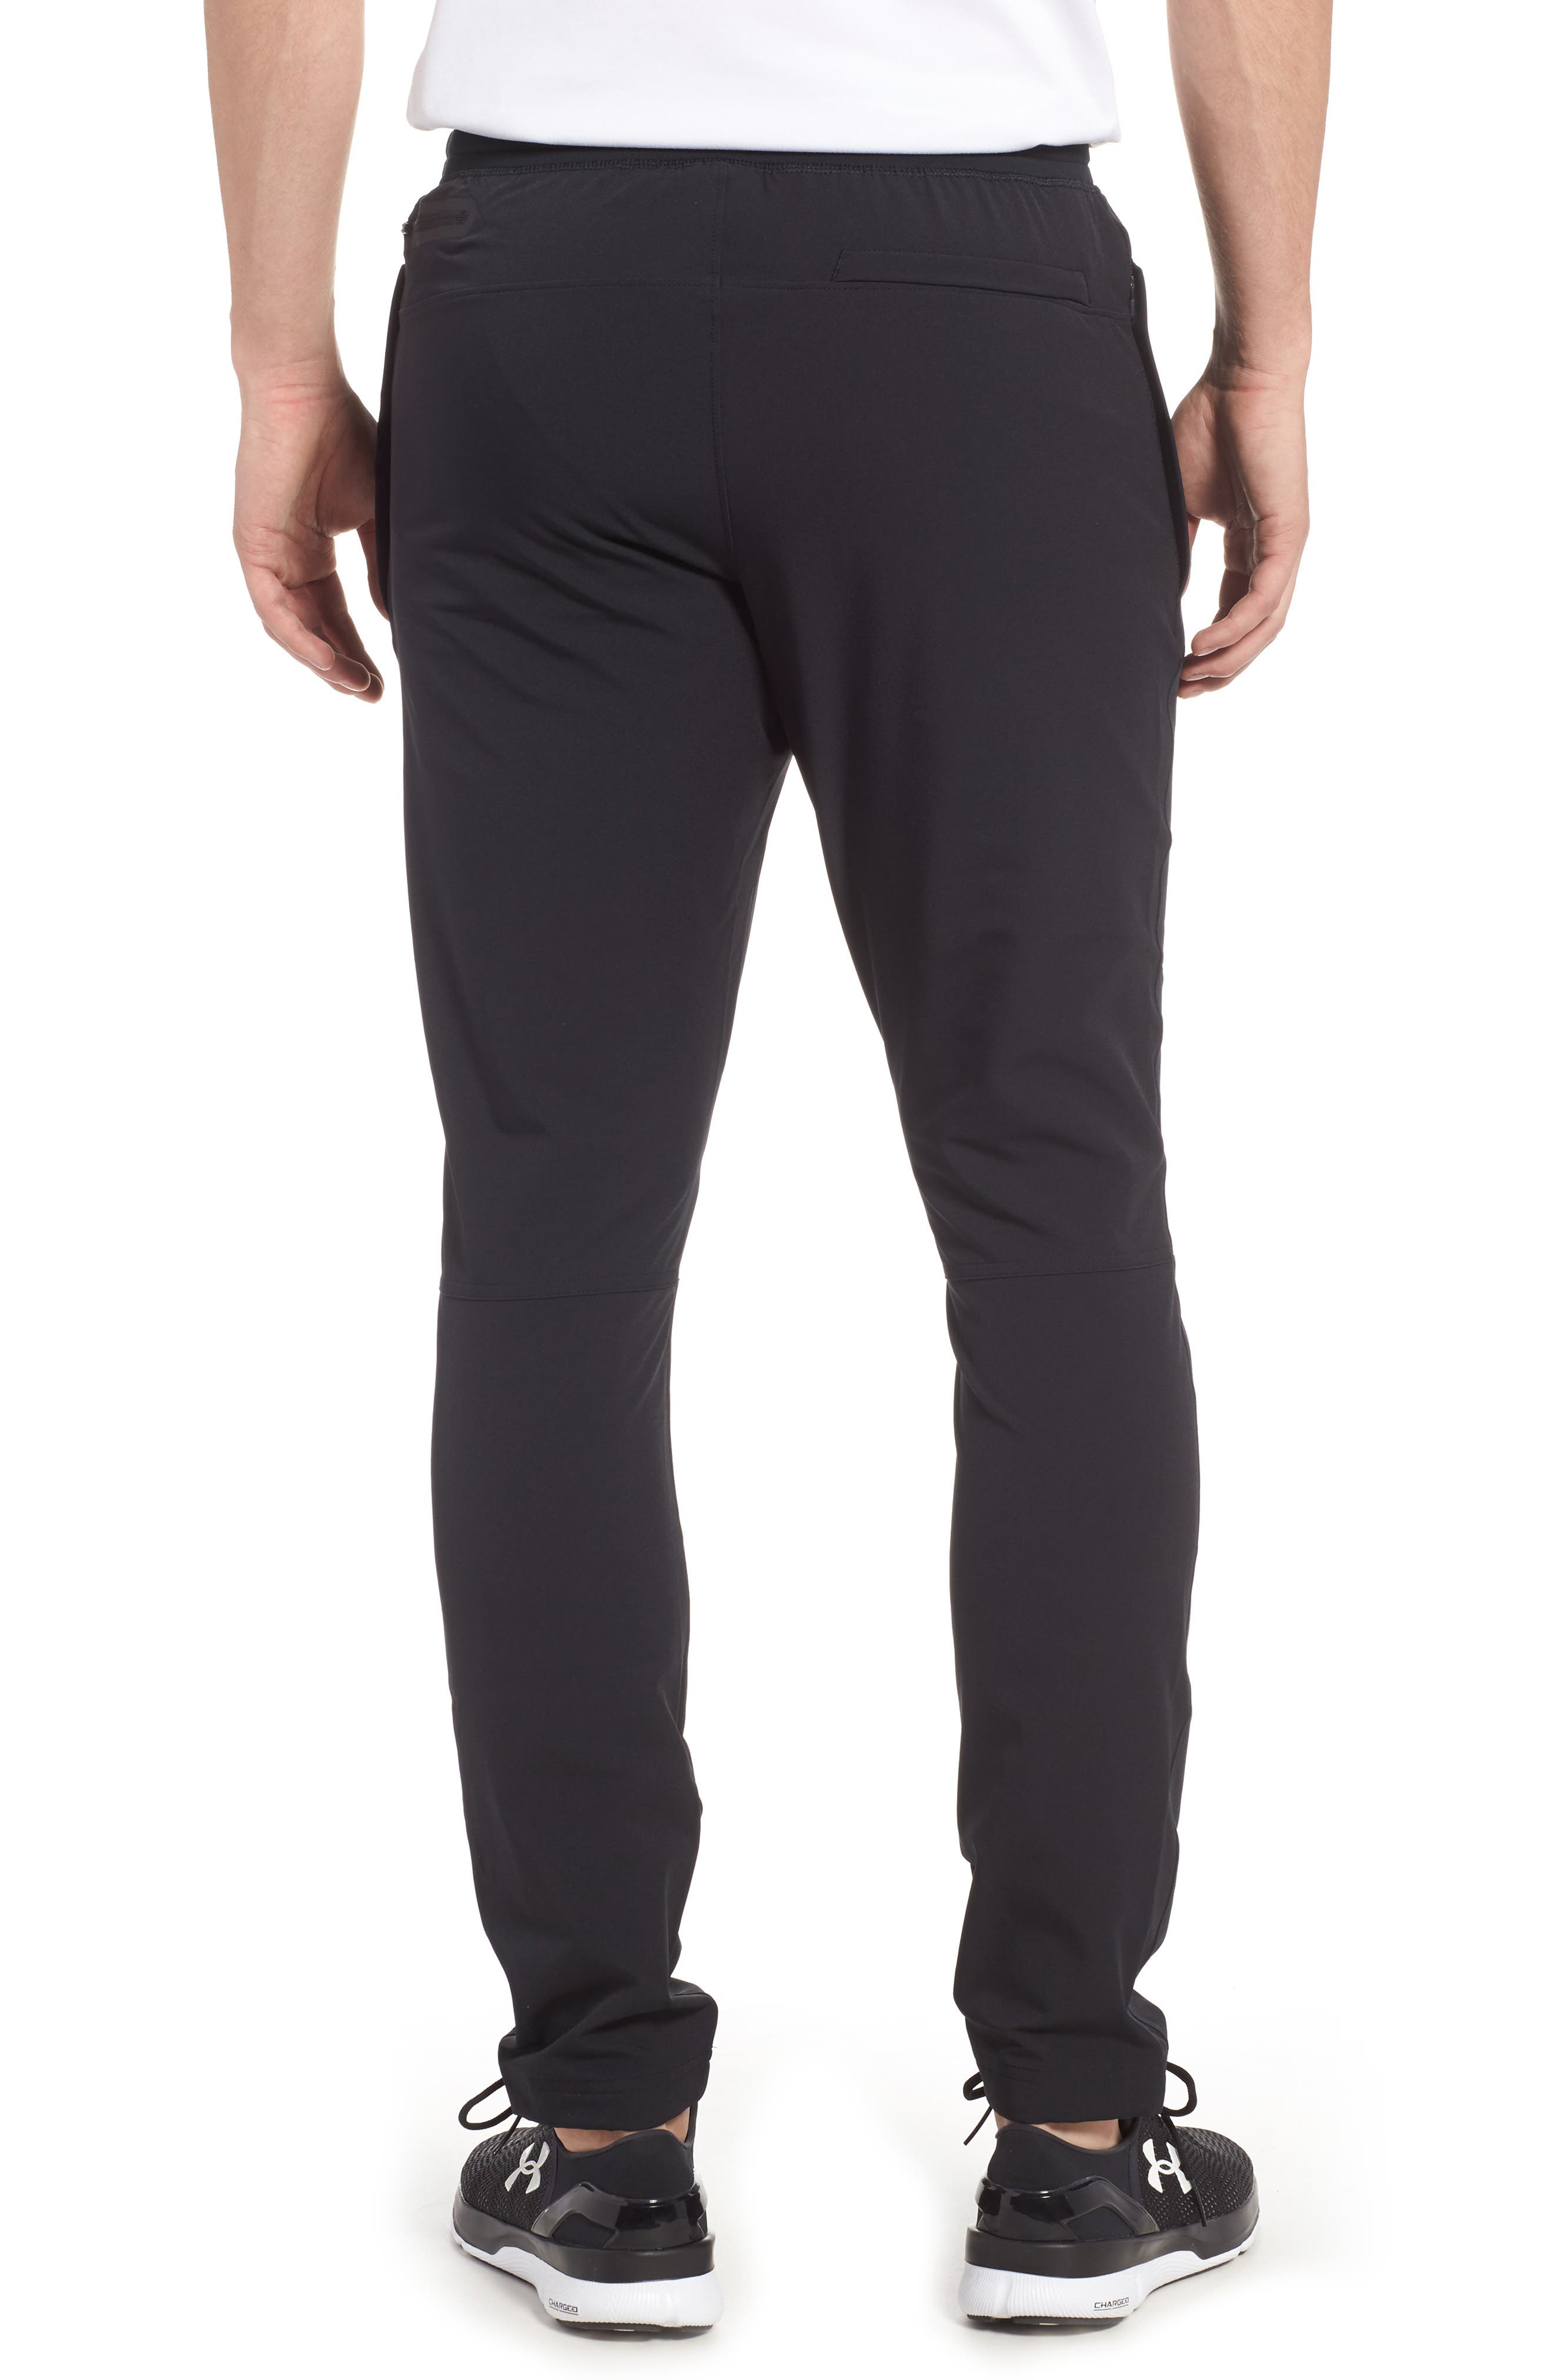 Fitted Woven Training Pants,                             Alternate thumbnail 2, color,                             BLACK